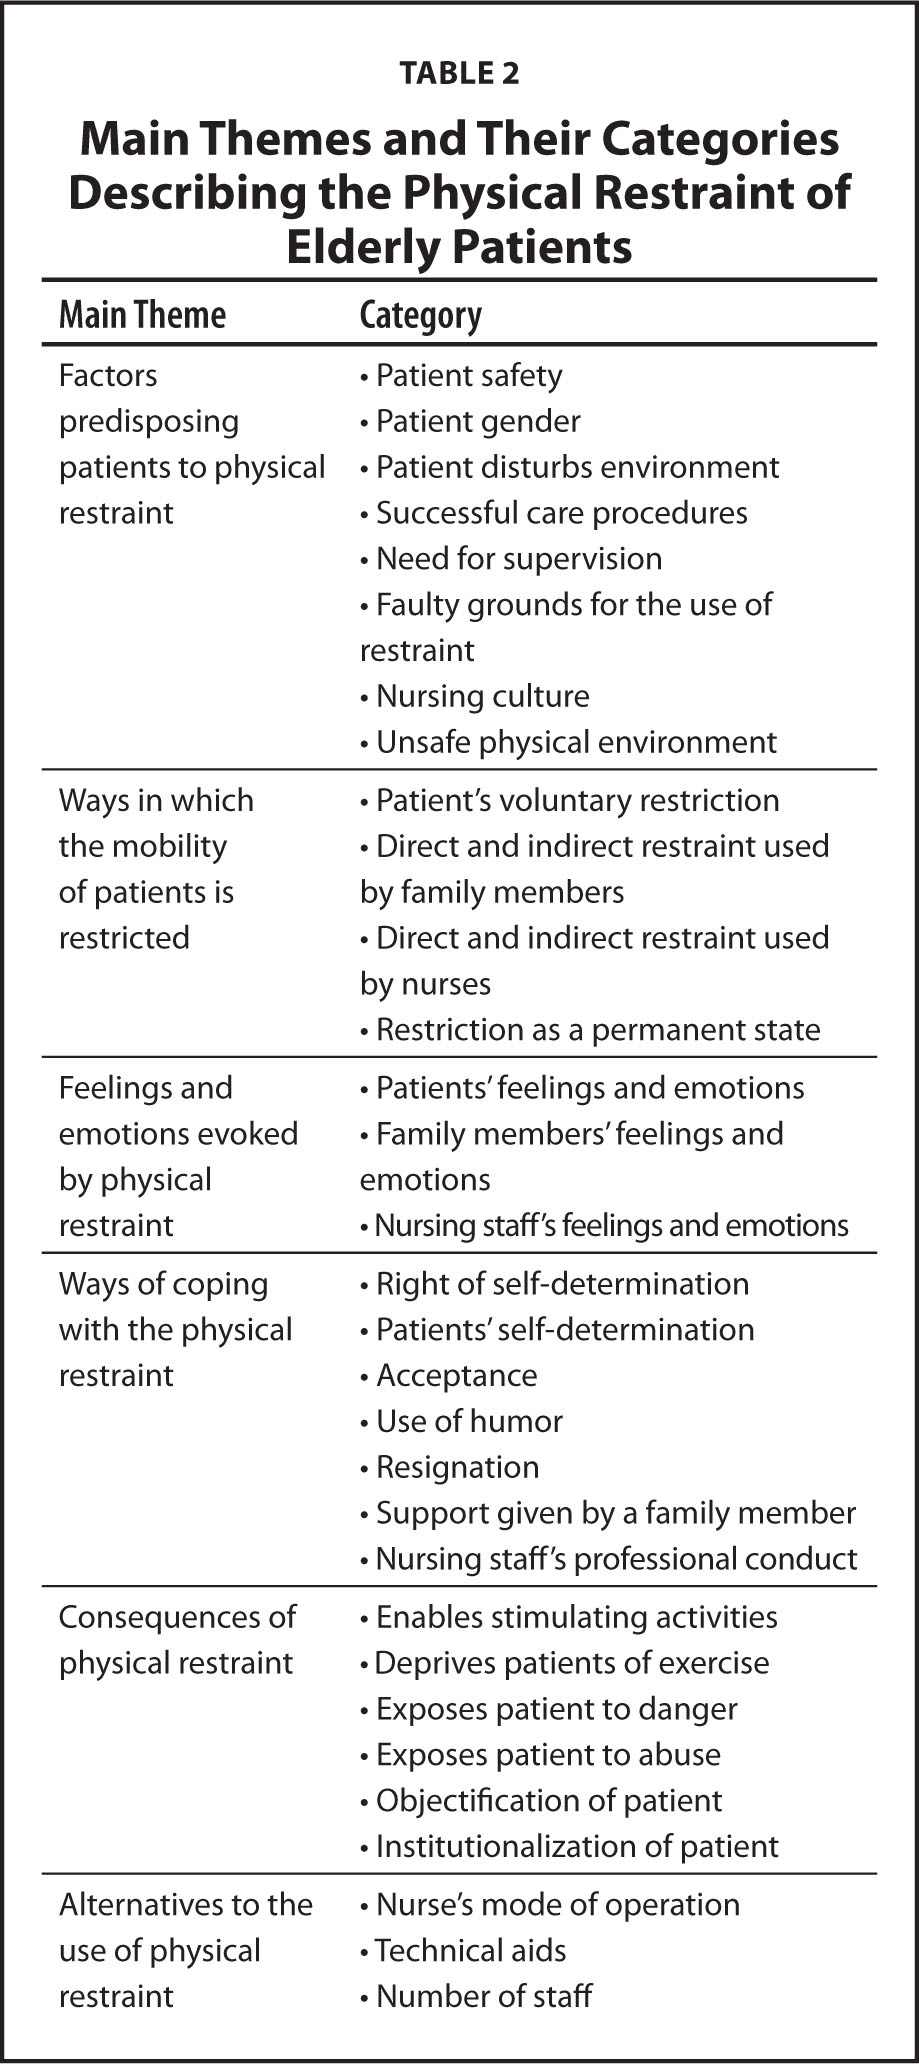 Main Themes and Their Categories Describing the Physical Restraint of Elderly Patients